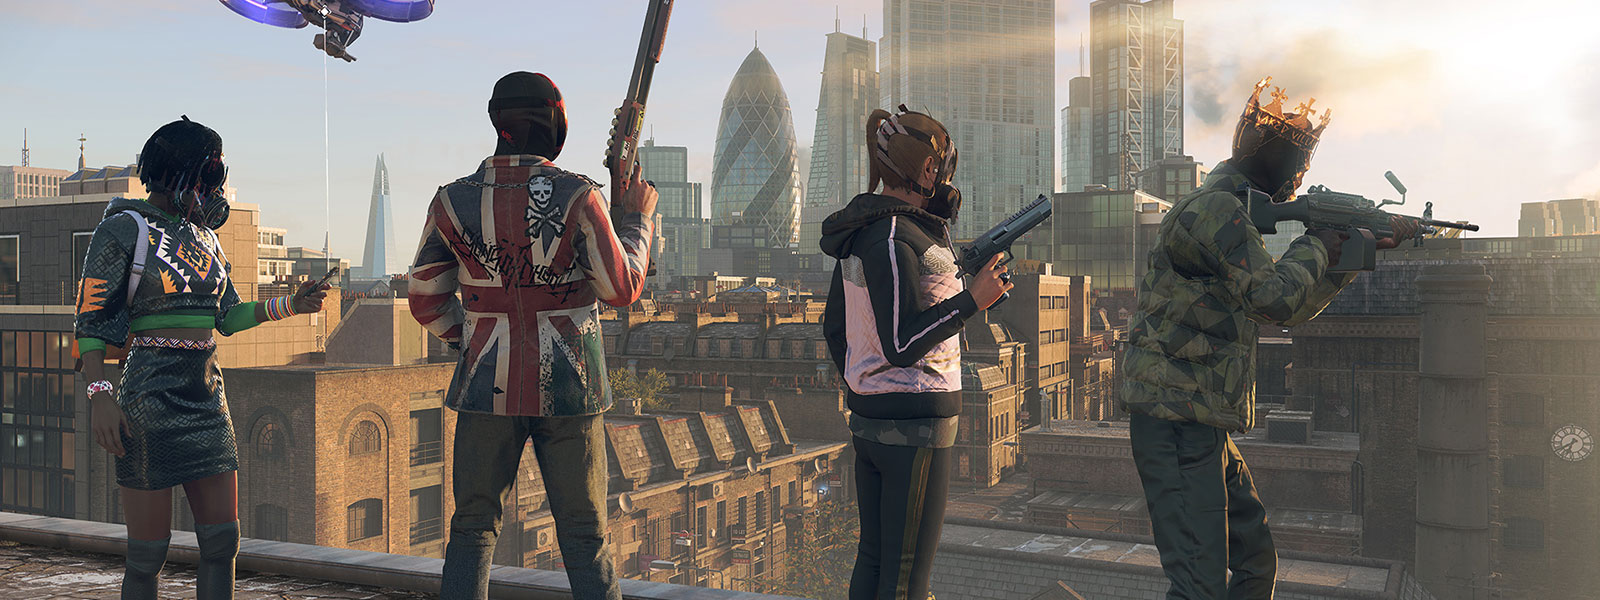 Characters lined up on a roof with masks and weapons at the ready looking towards a city